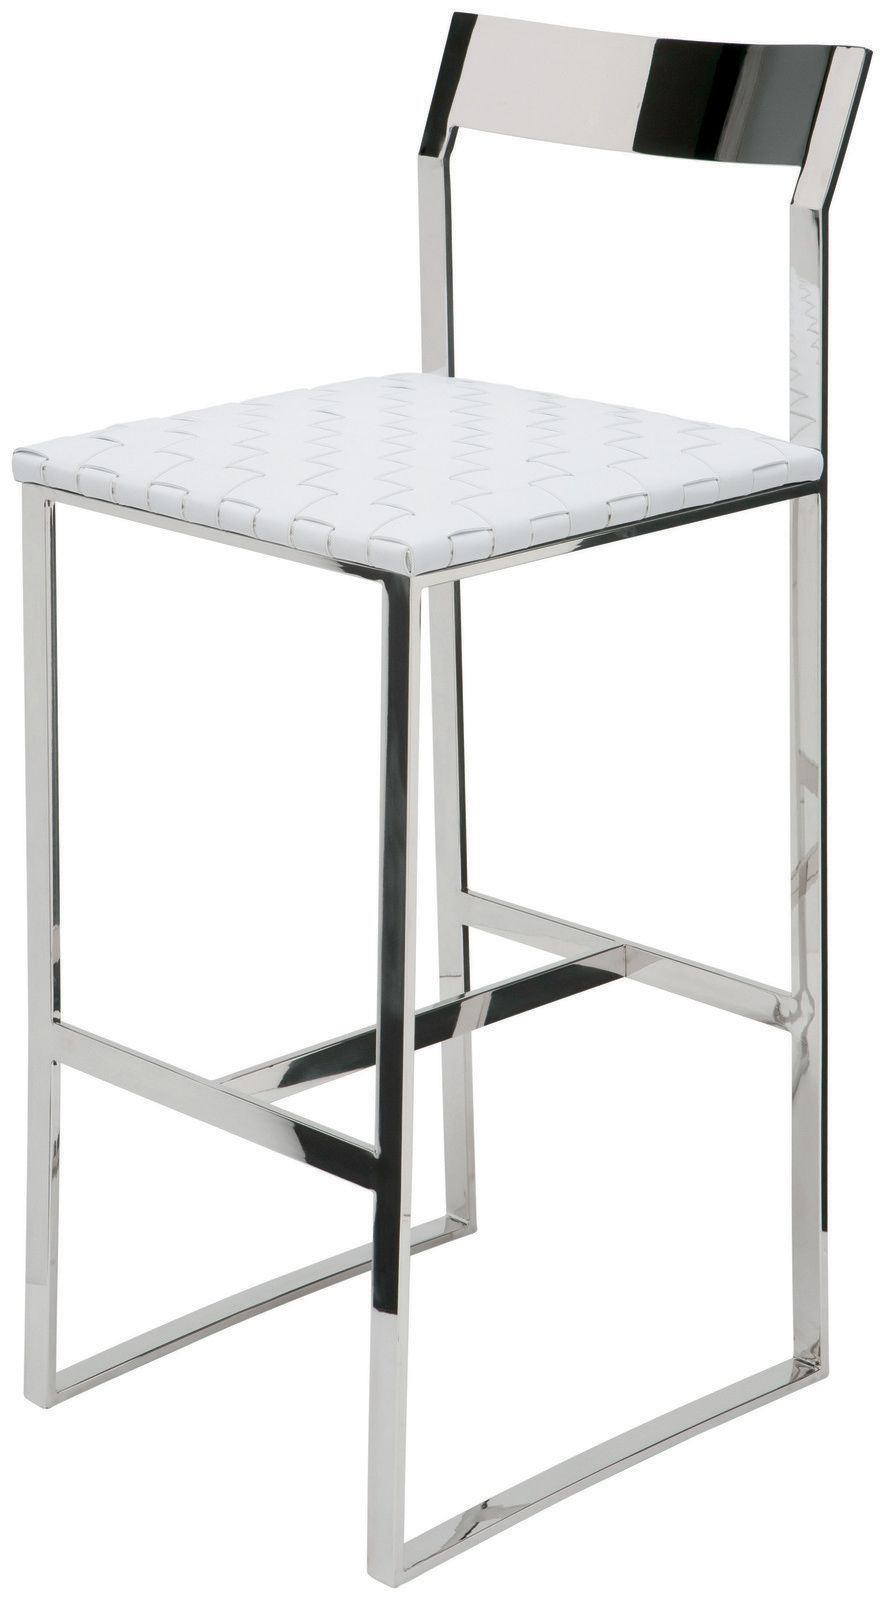 Charming Camille Stainless Steel Counter Stool In White Leather By Nuevo   HGDJ792